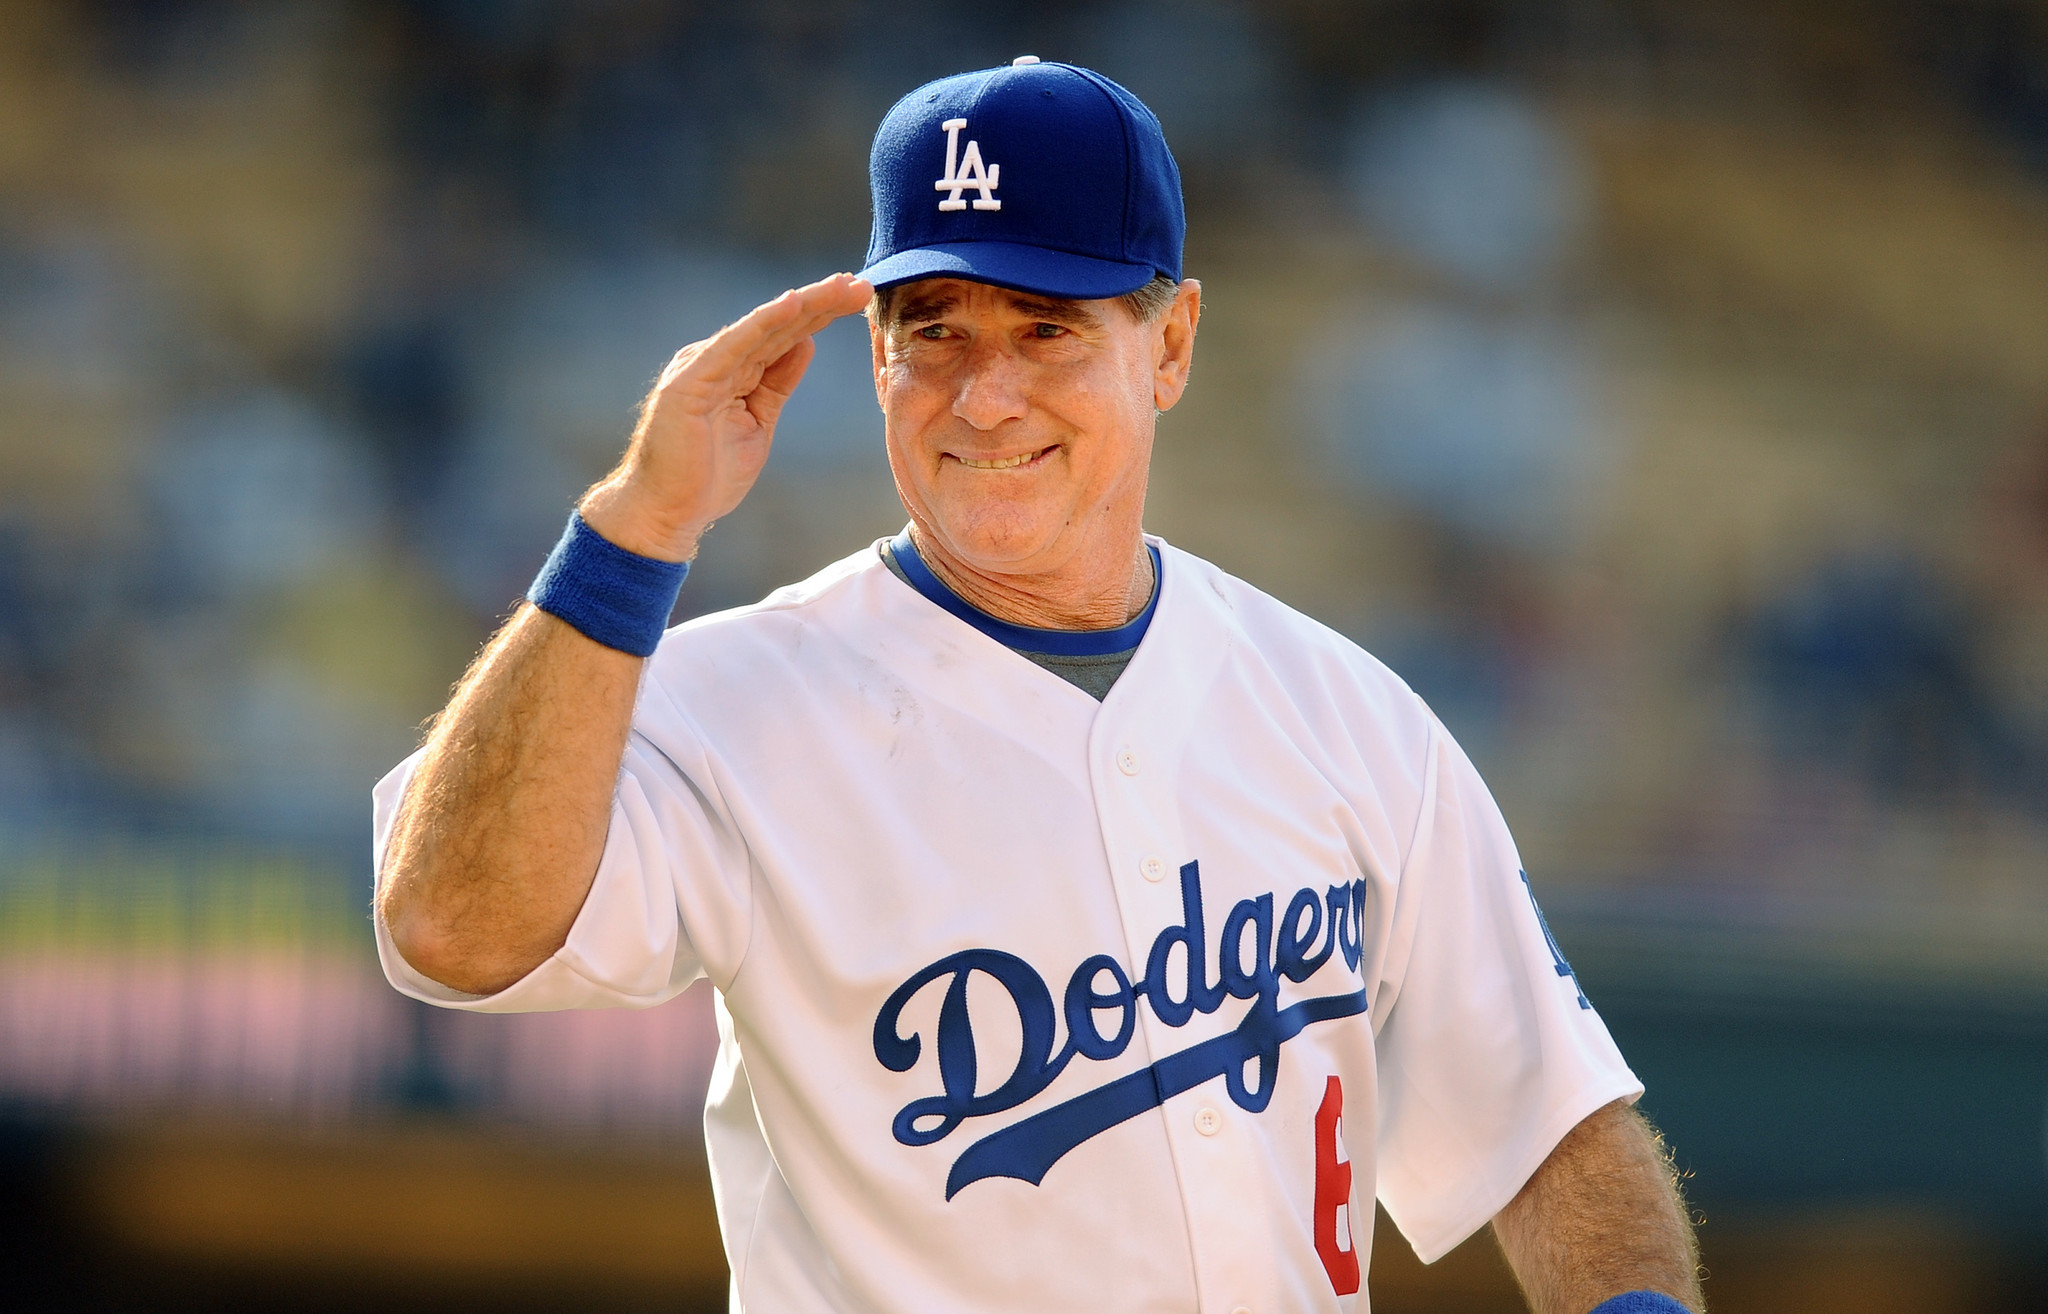 Poll: Who are the 2 best first basemen in L.A. Dodgers, Angels history? - LA Times